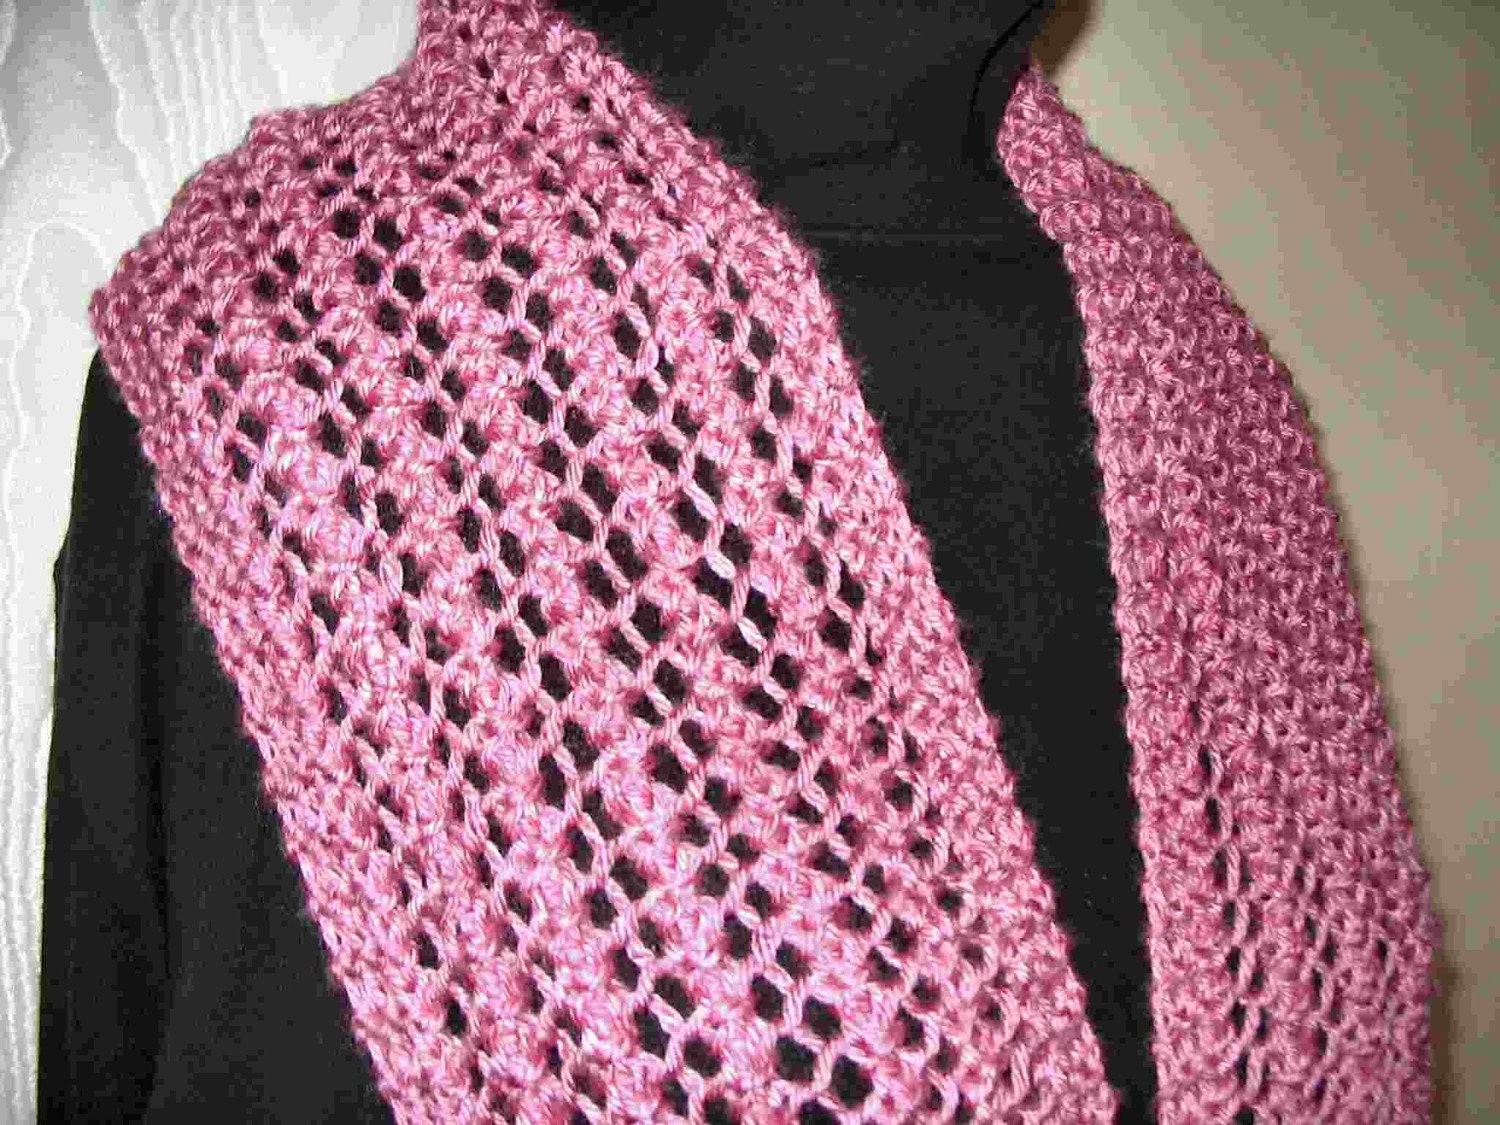 Knitted lace scarf - Four patterns in One Easy to knit one row lace ...